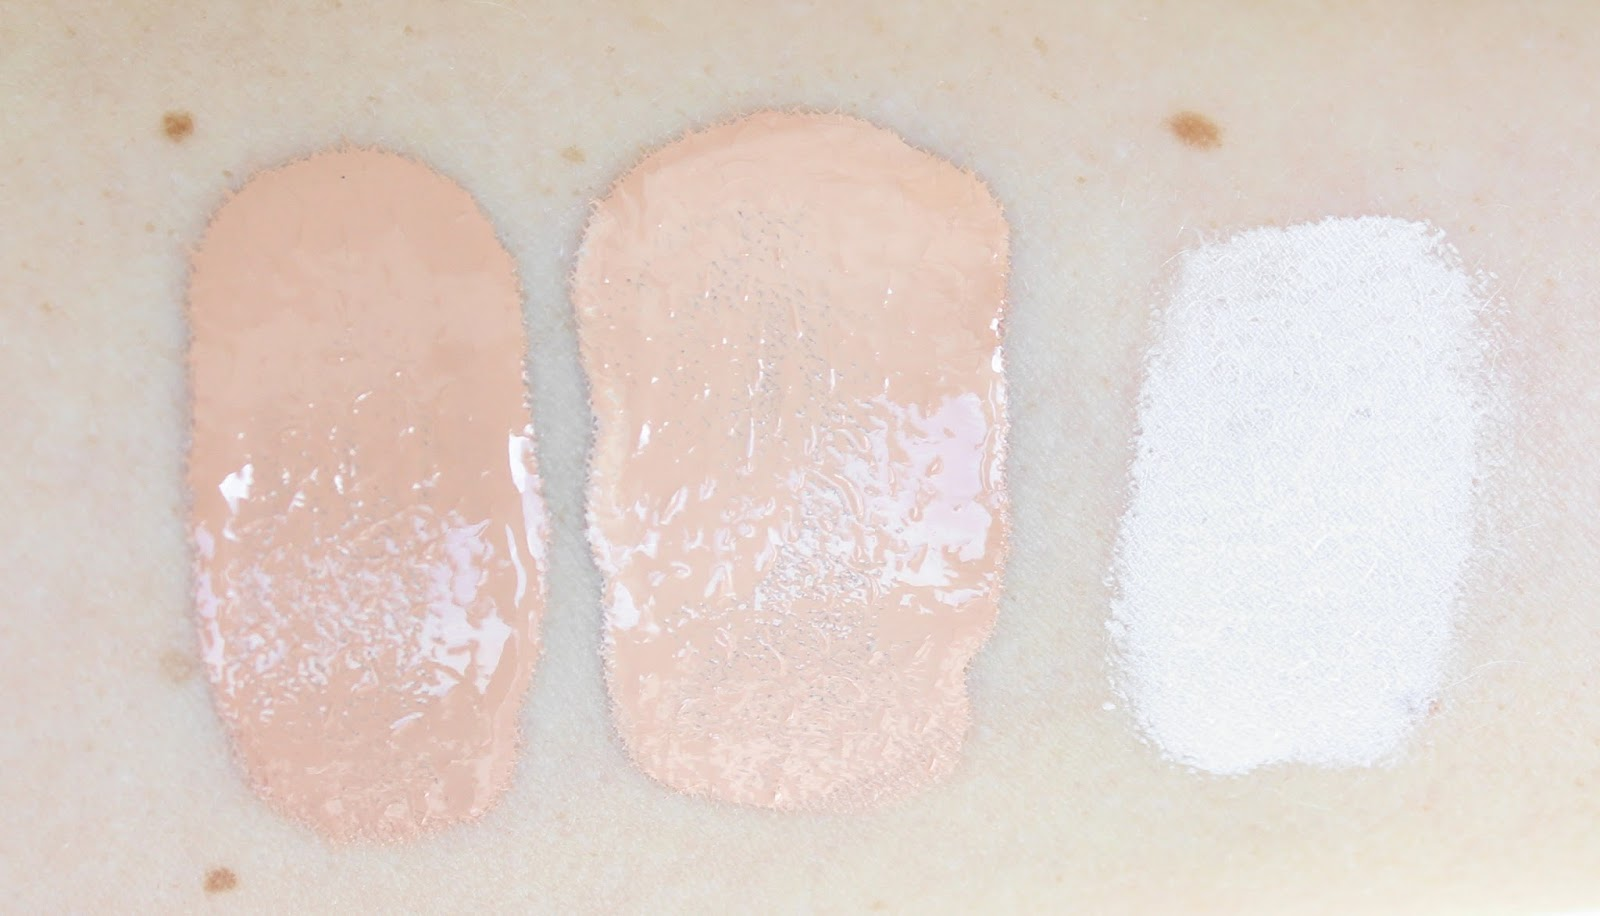 The Body Shop Lightening Shade Adjusting Drops Swatches - Create Your Perfect Foundation Shade